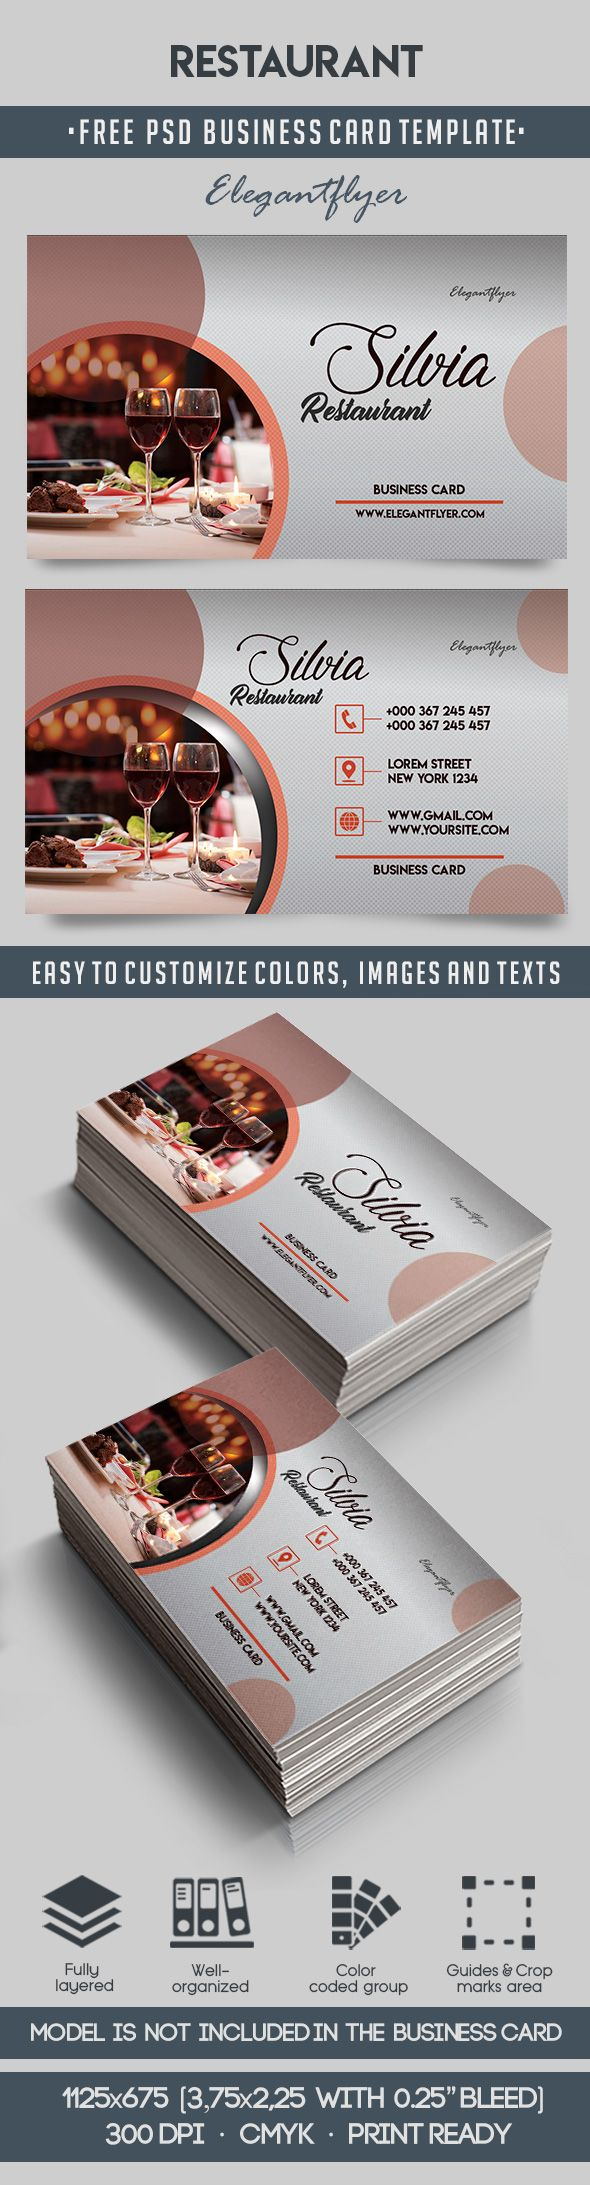 restaurant  u2013 free business card templates psd  u2013 by elegantflyer